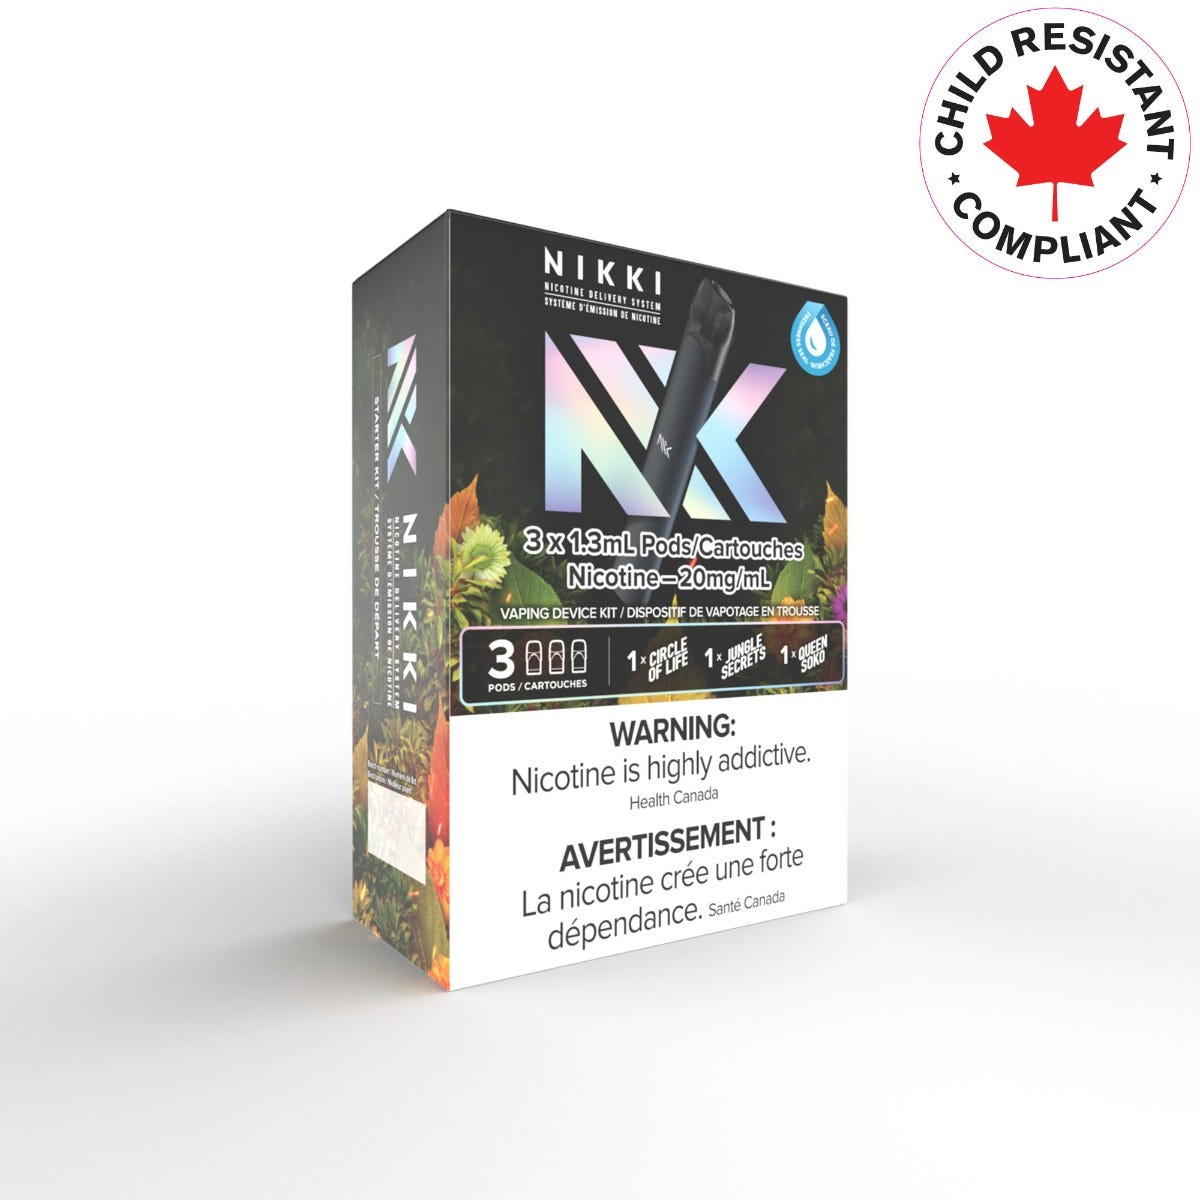 Nikki Starter Kit Alliston Newmarket Woodbridge Vaughan Toronto GTA Ontario Canada